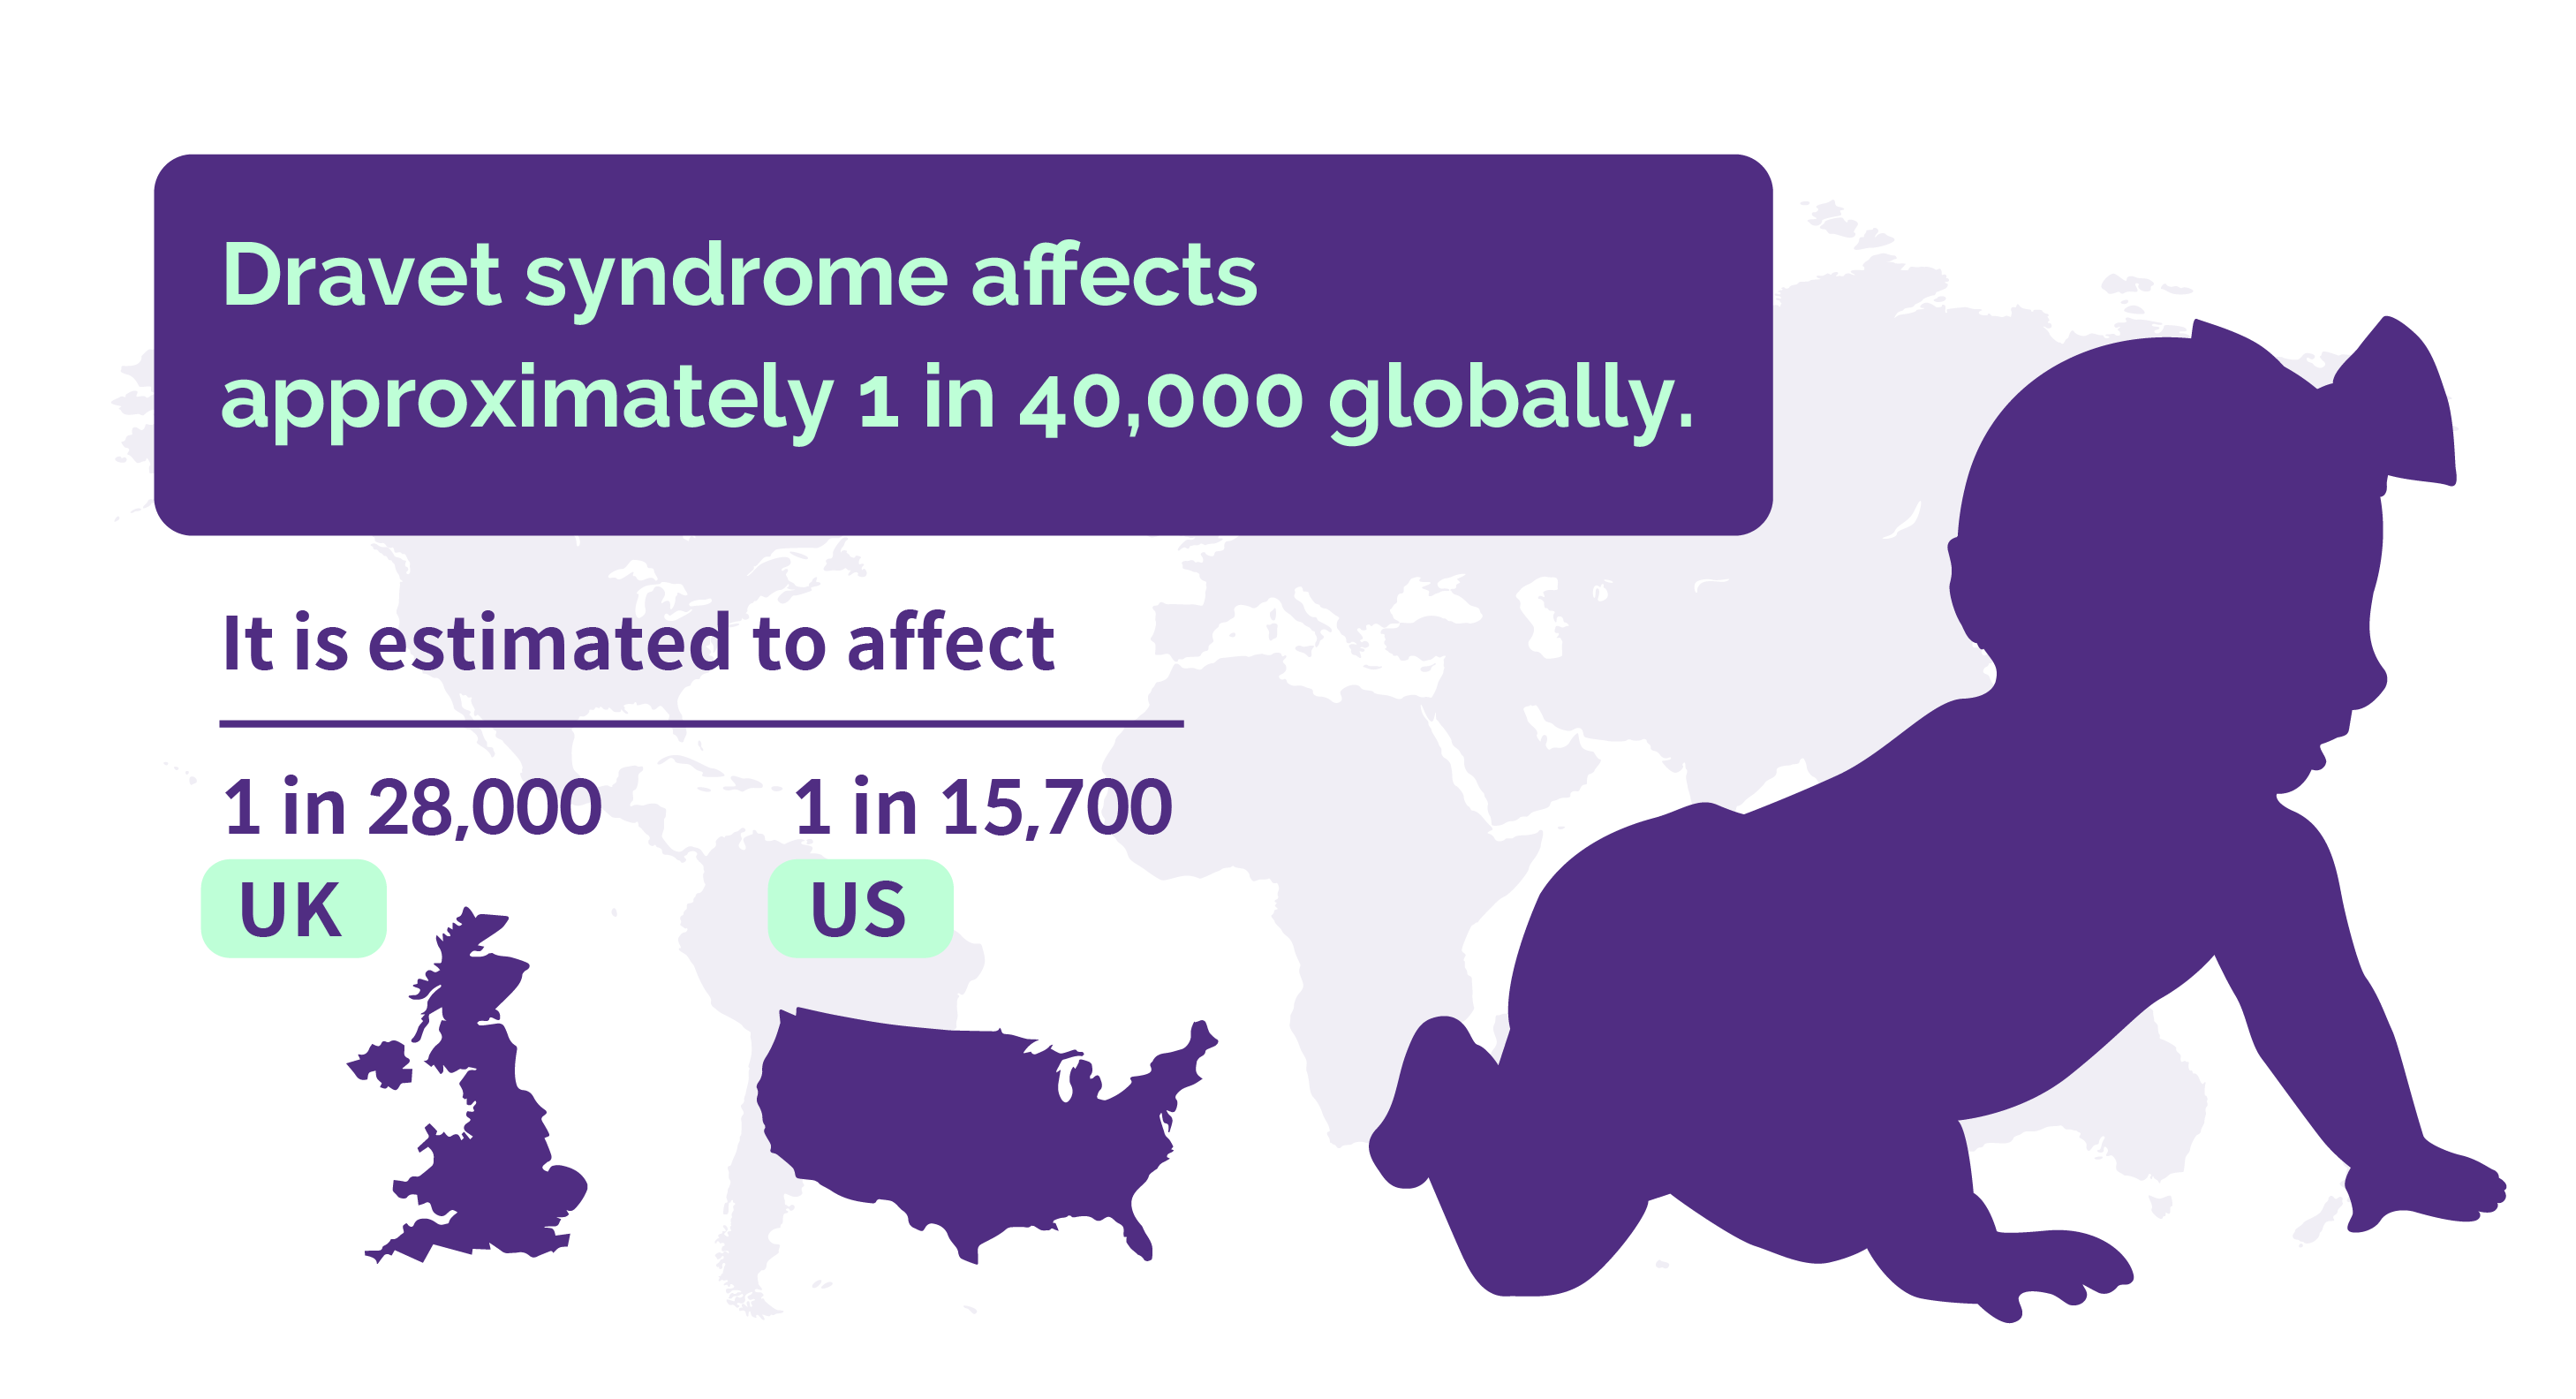 Map background and words showing Dravet syndrome's global prevalence and national prevalence of the UK and the US